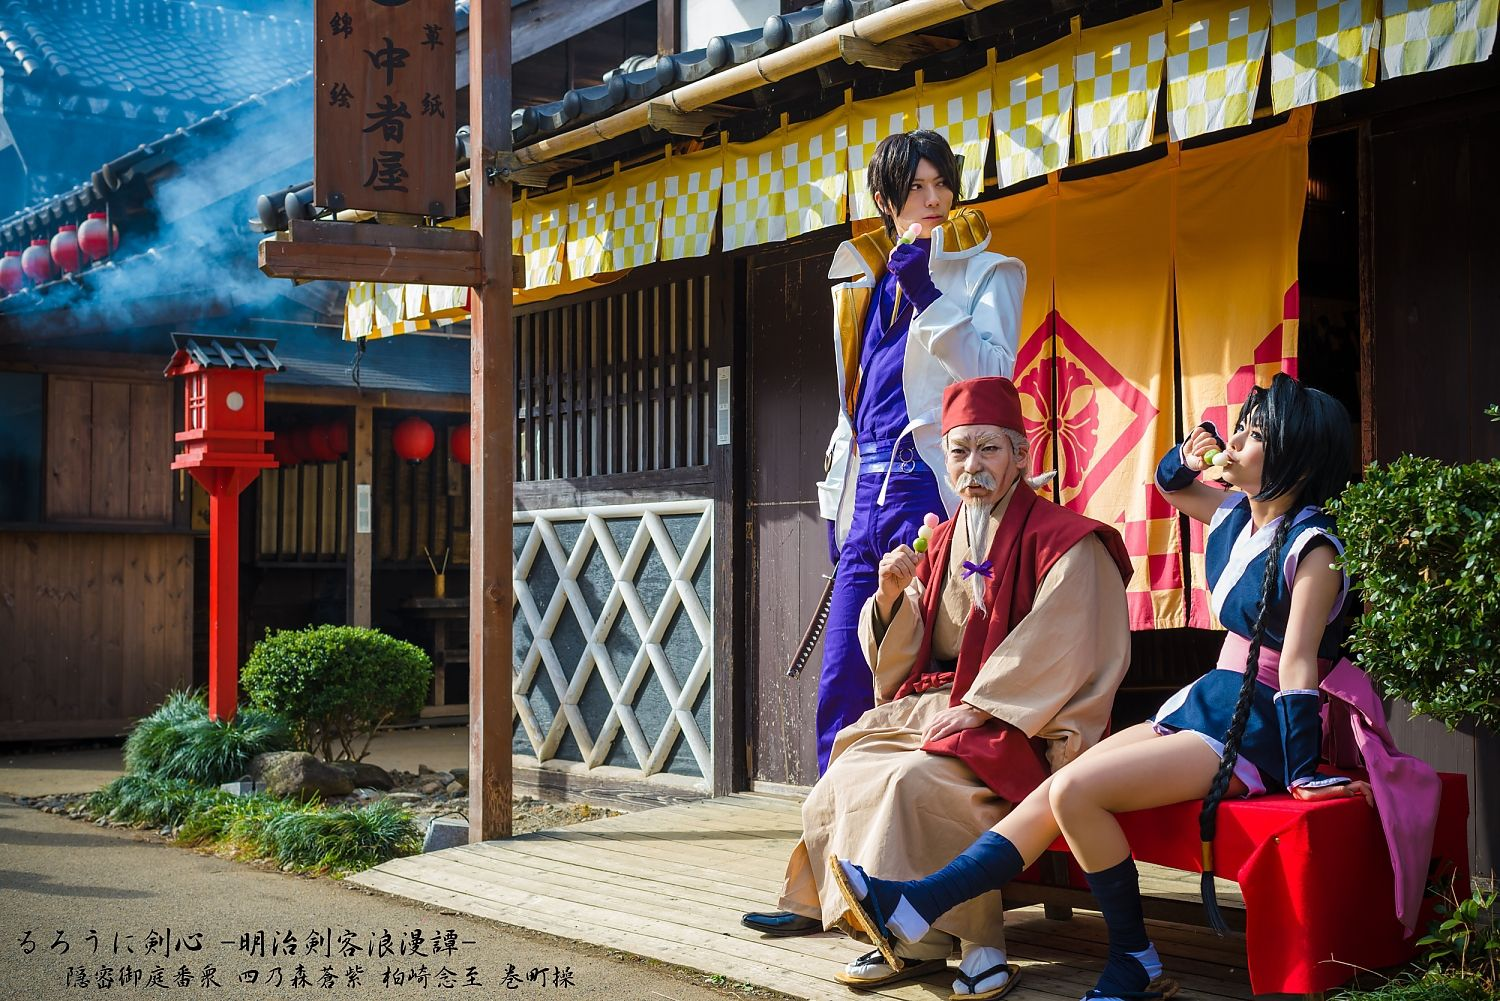 Rurouni Kenshin - Aoshi, Misao & her grandfather - Cosplay (published by yayoi on Cure WorldCosplay)